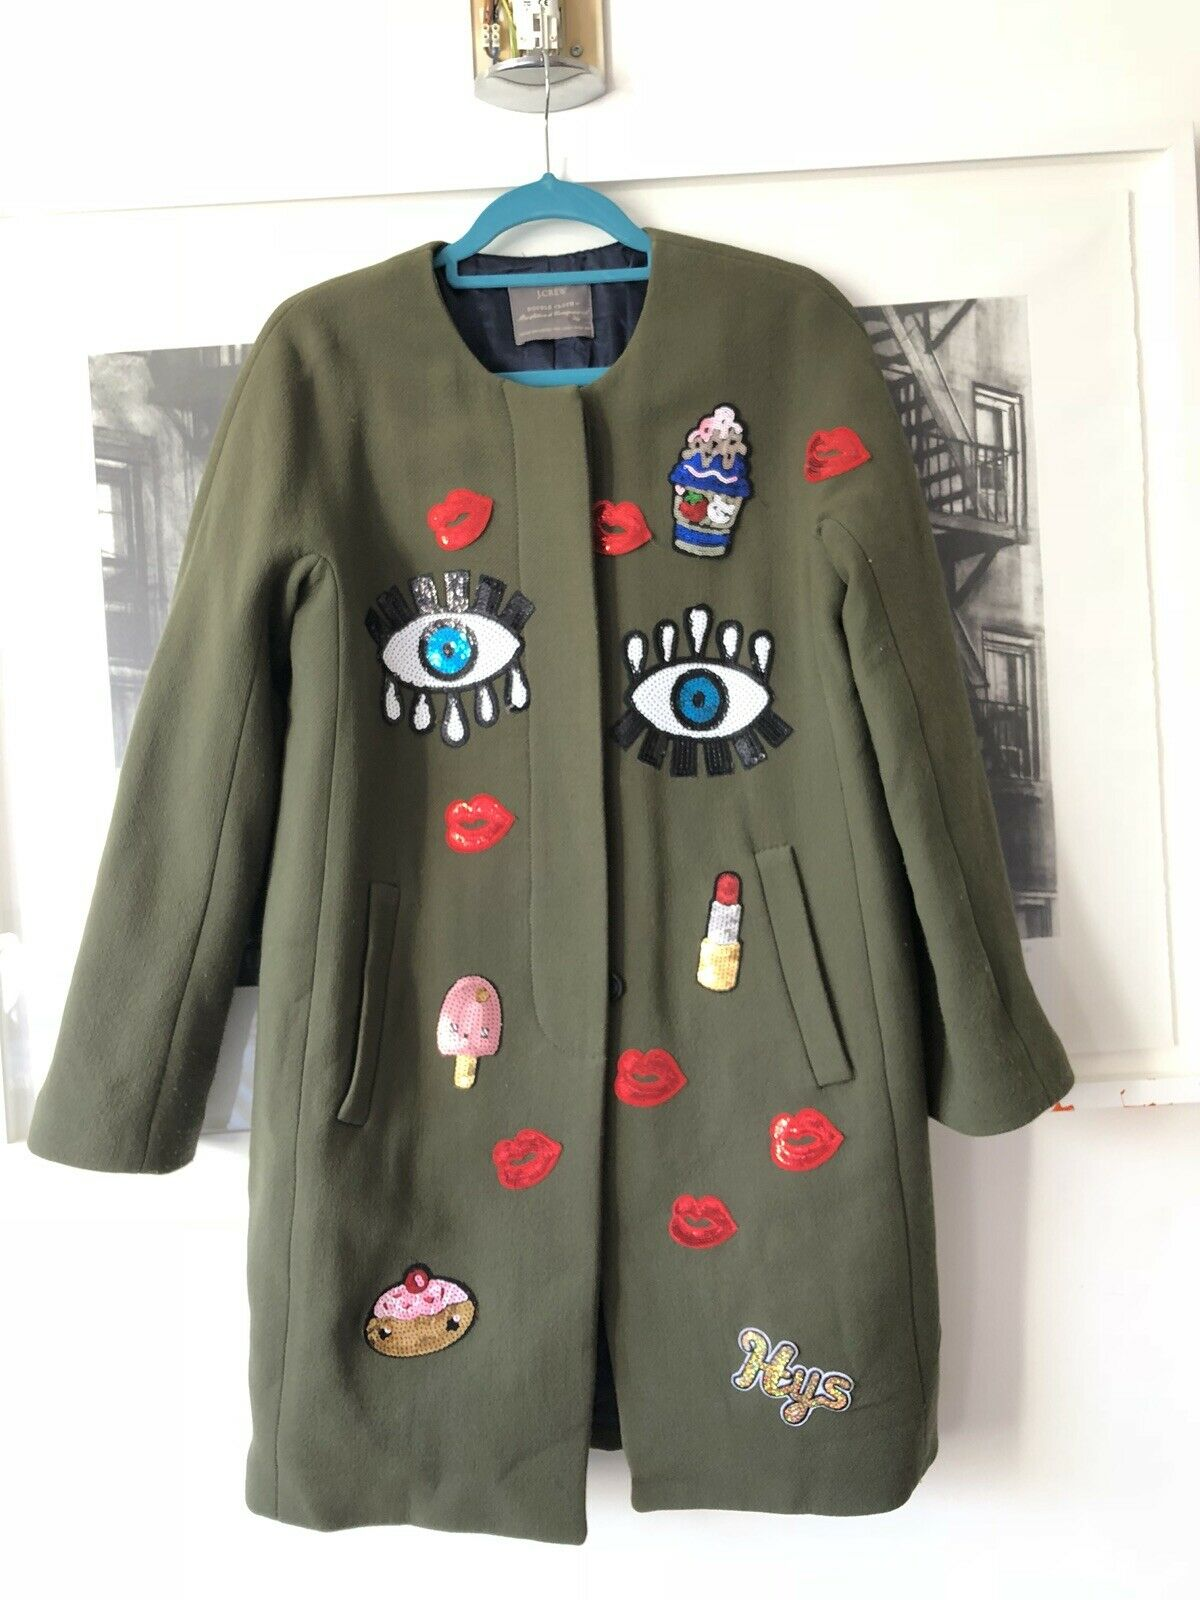 J Crew Italian Fabric Wool Coat Green Sz 10 With Patches DOUBLE CLOTHES